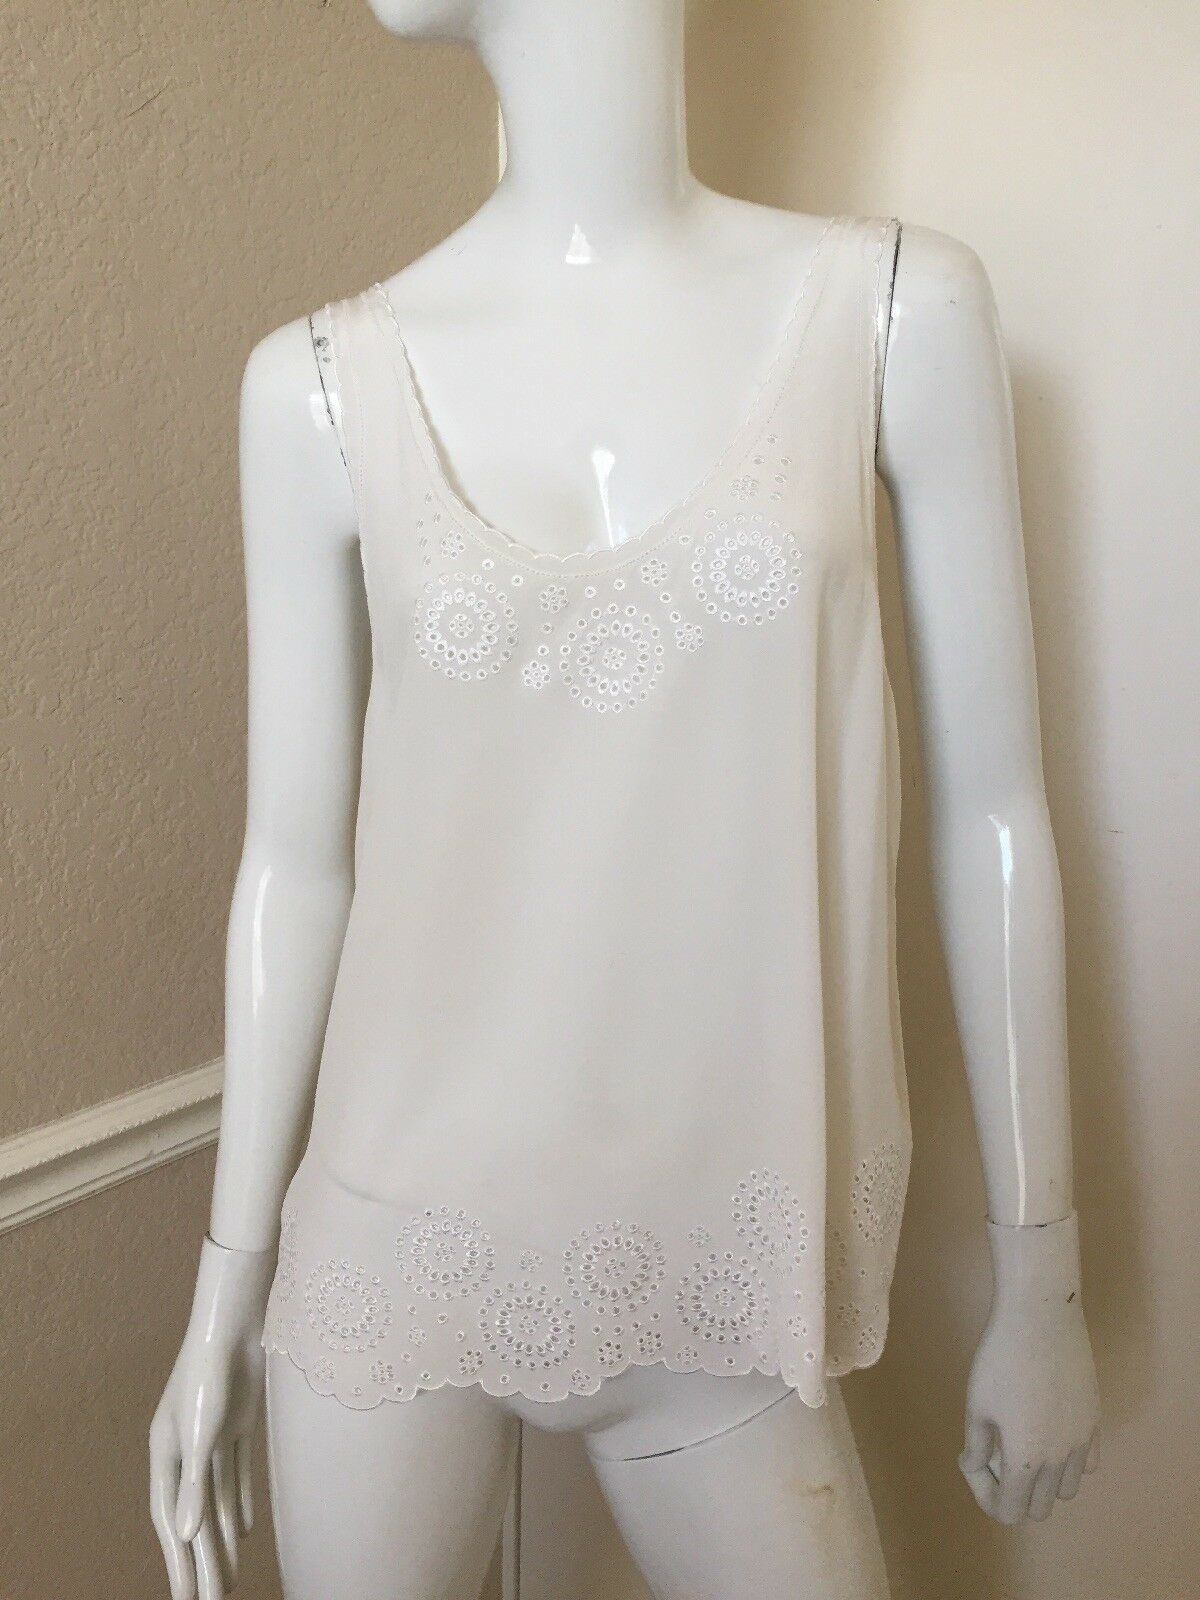 JOIE Brand NEW  100% Silk Sheer Boyd Eyelet Scalloped Hem Flowy Tank Top Sz M